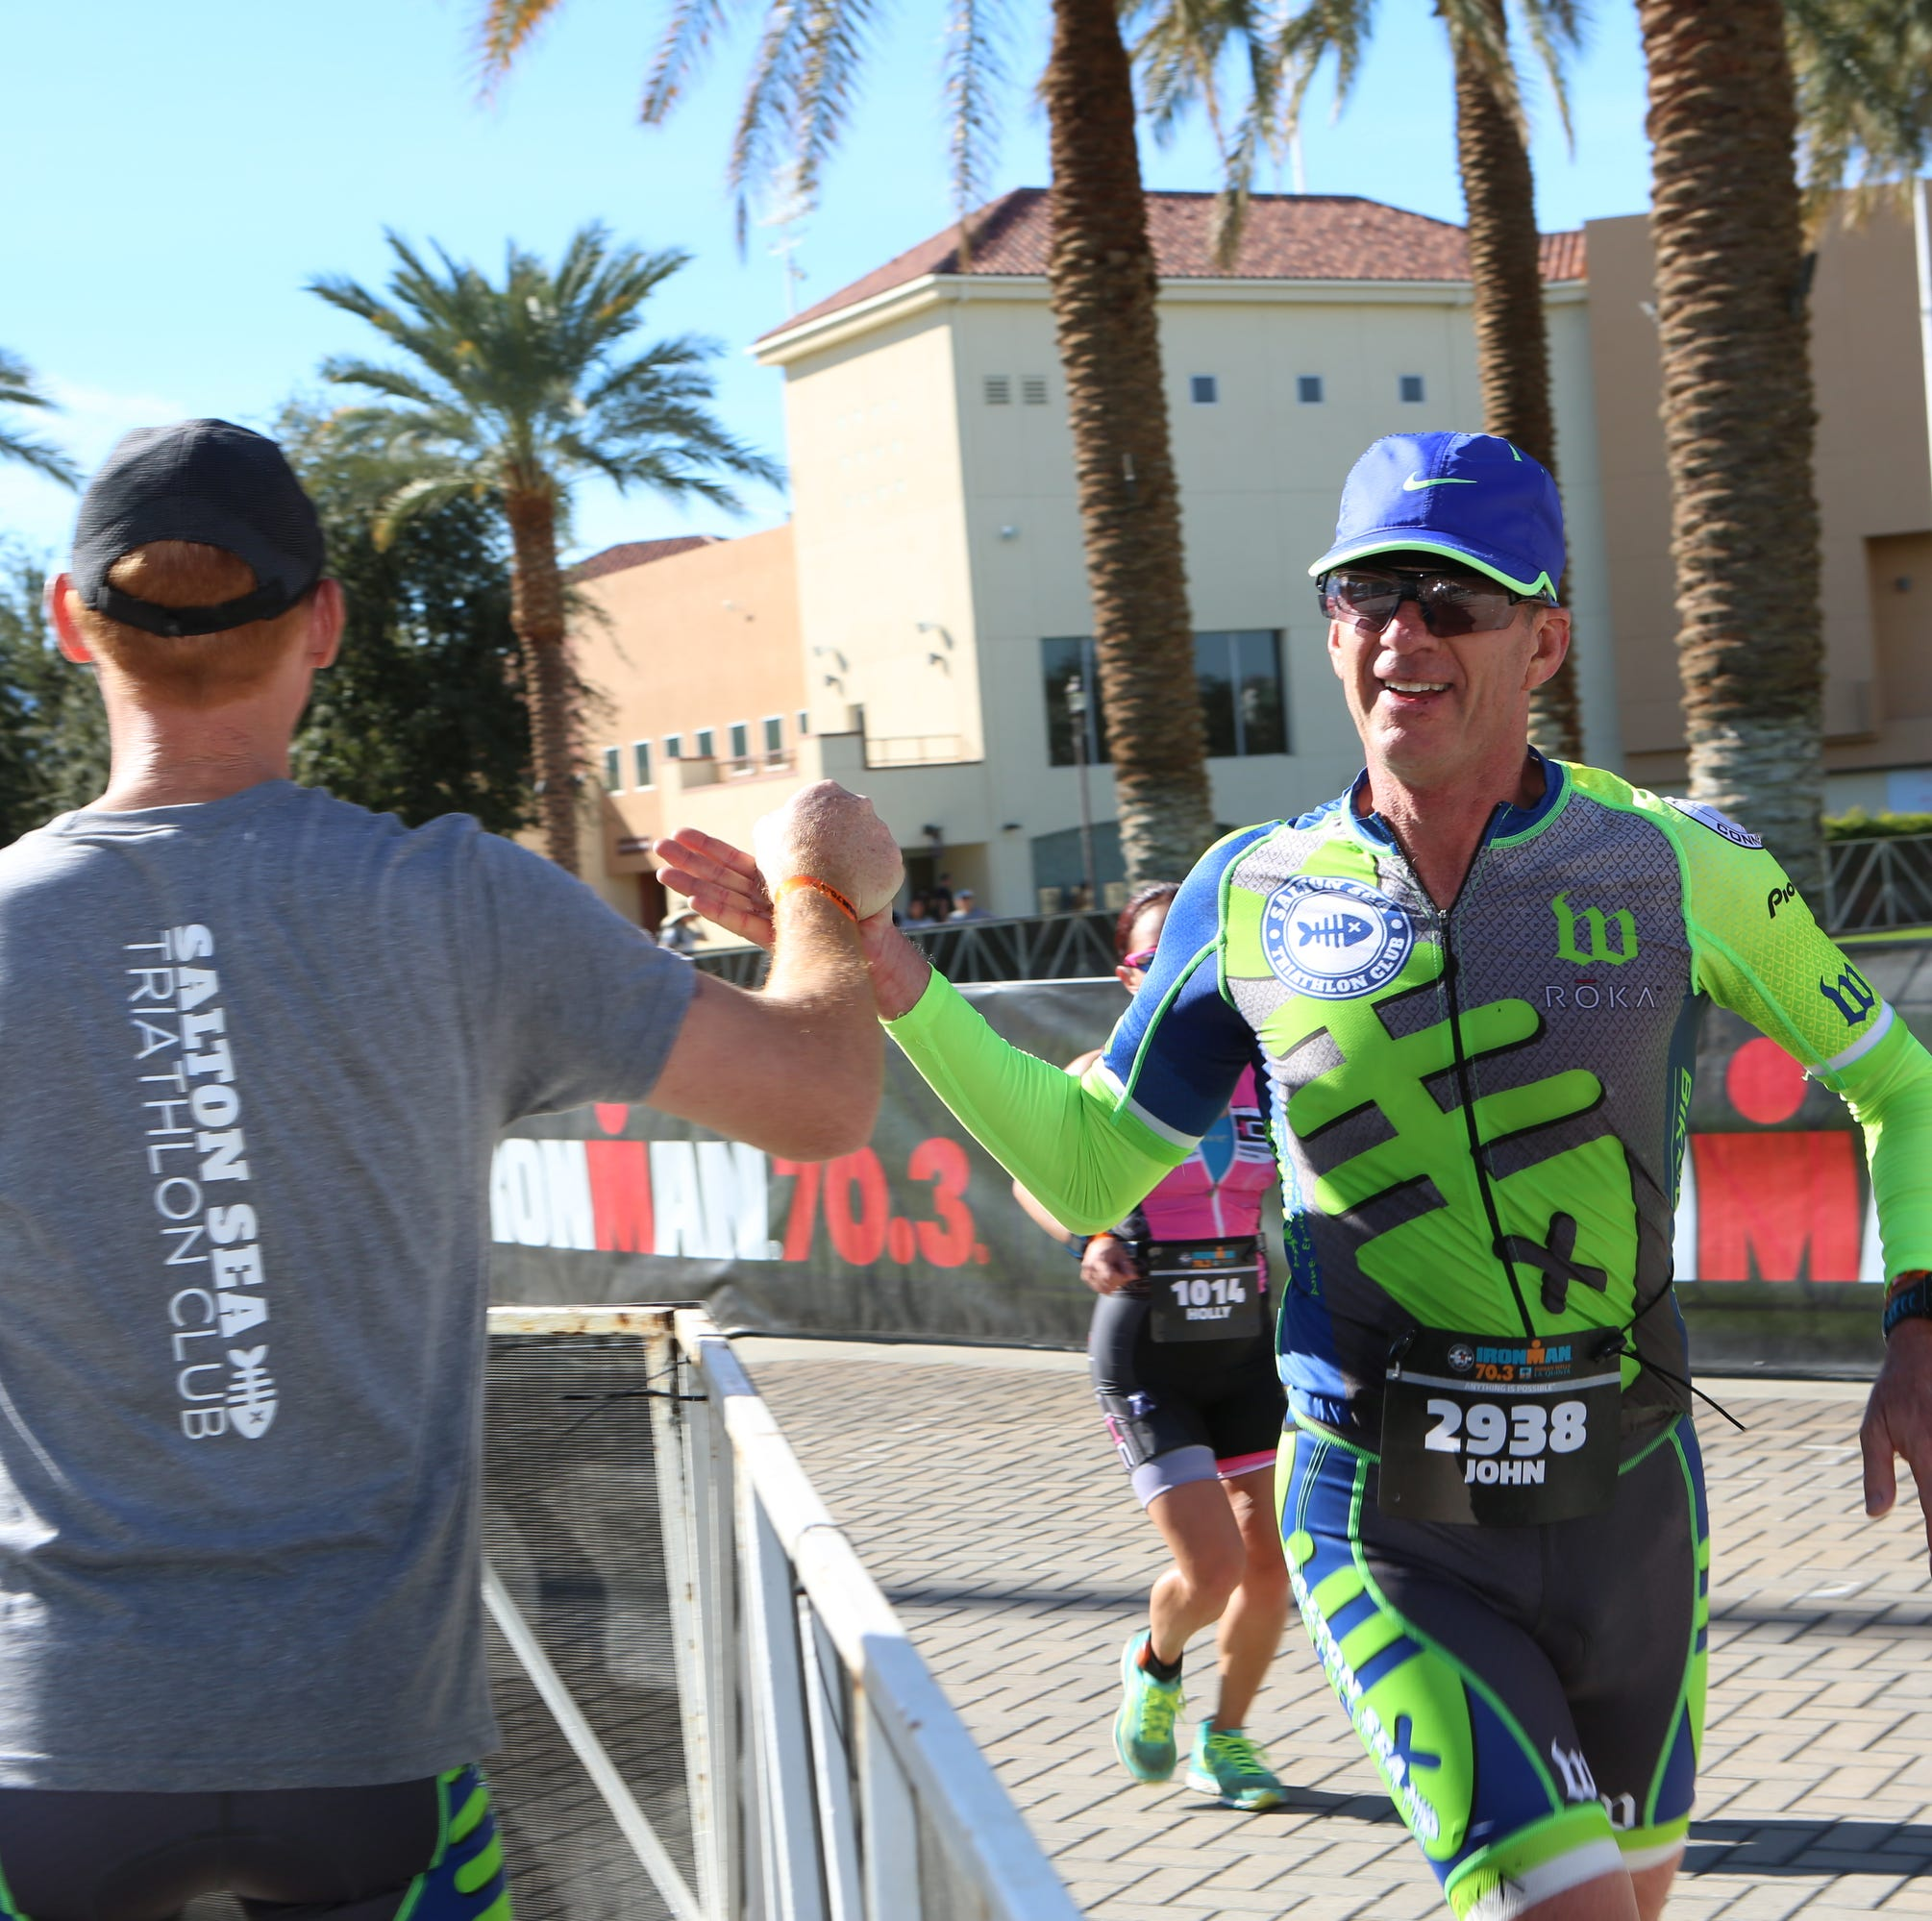 Ironman 70.3 will return to La Quinta with a new route. Here are the details